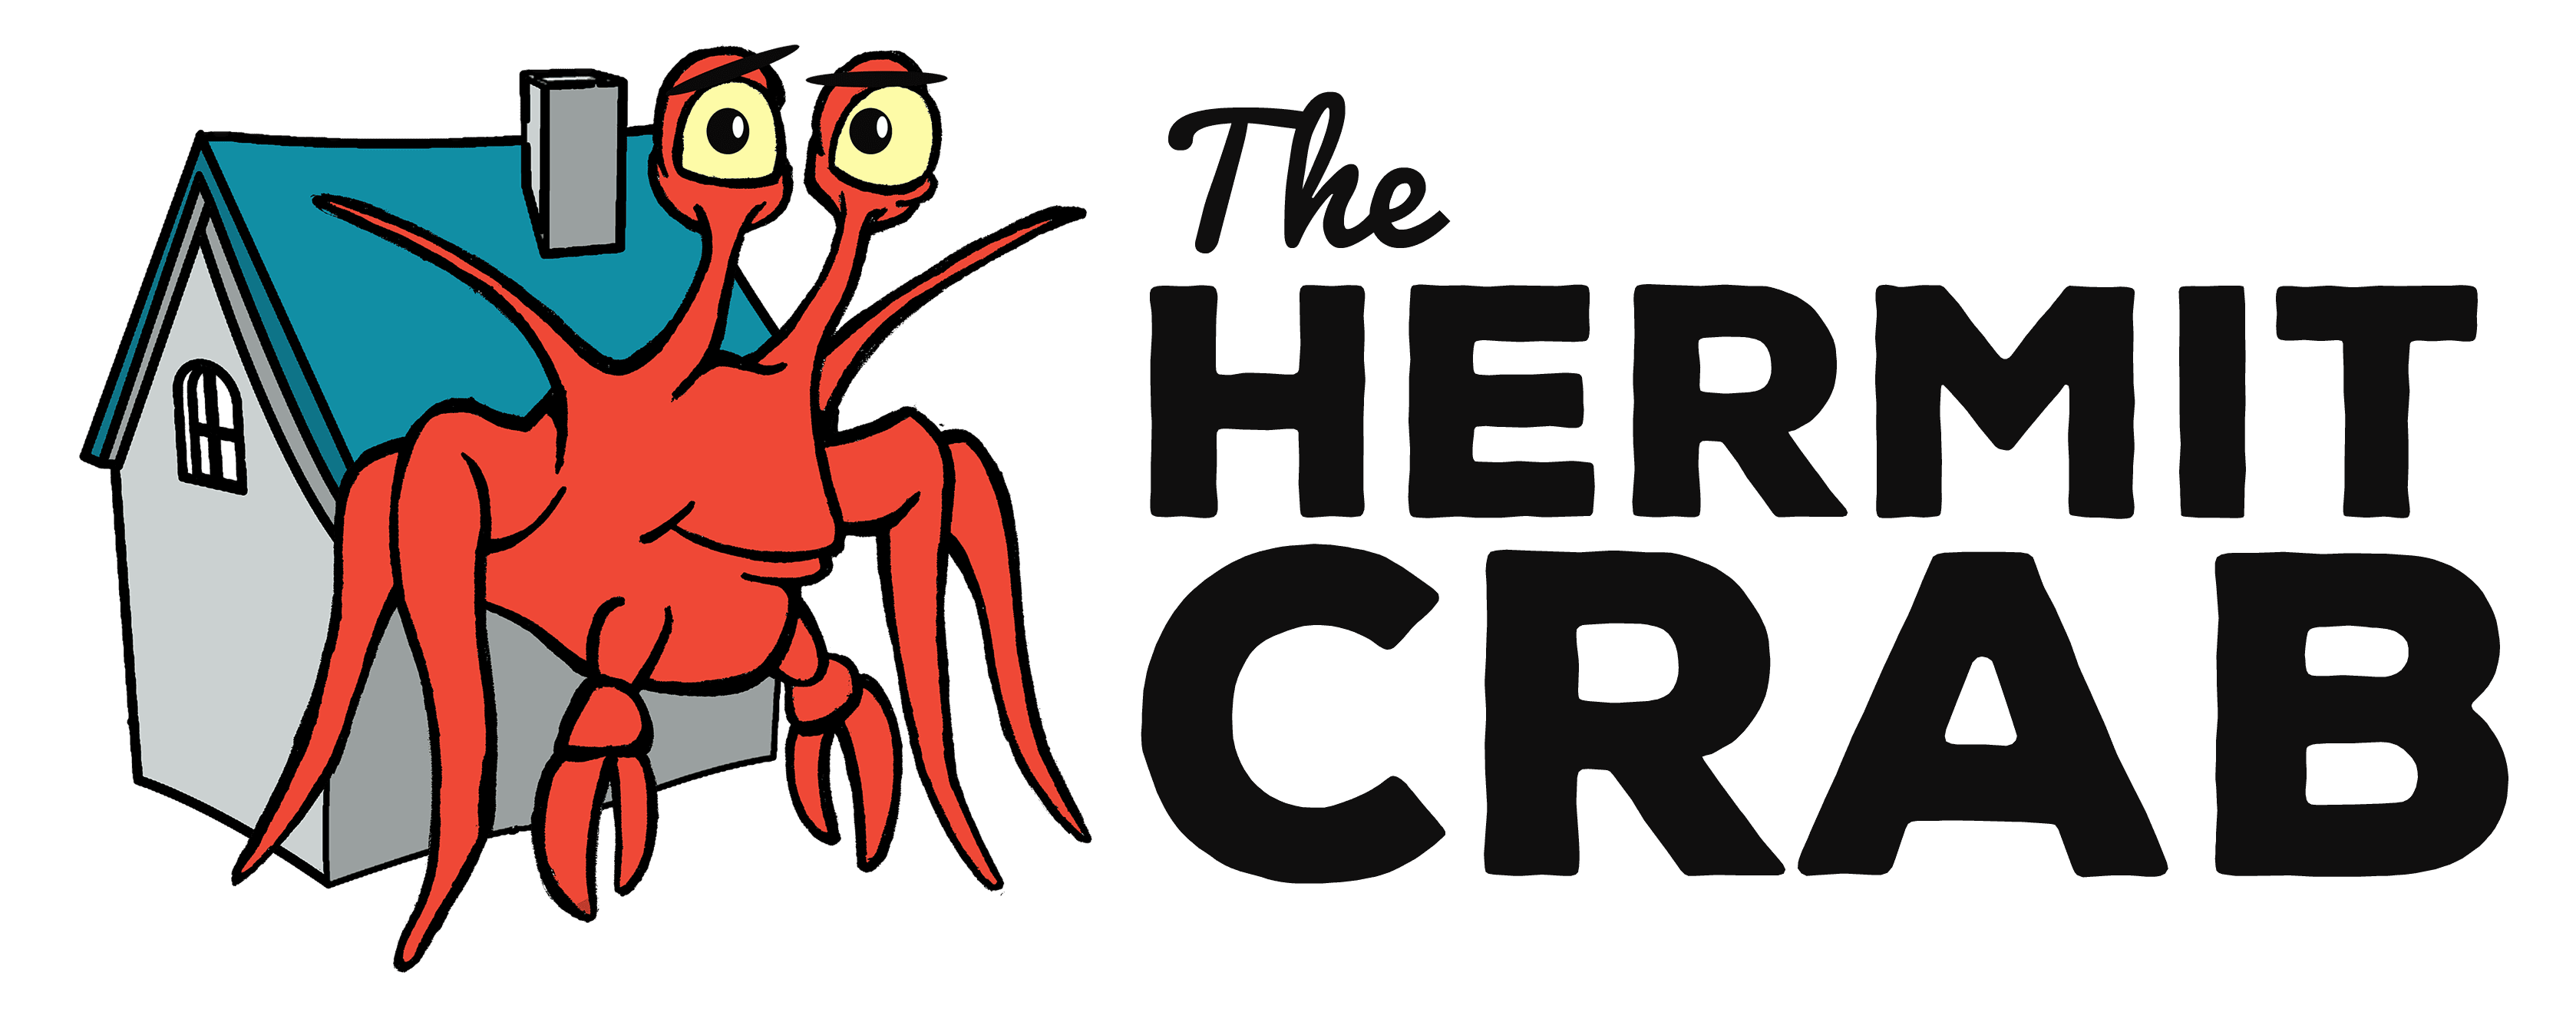 Housesitting quality wallpapers for. Crab clipart hermit crab